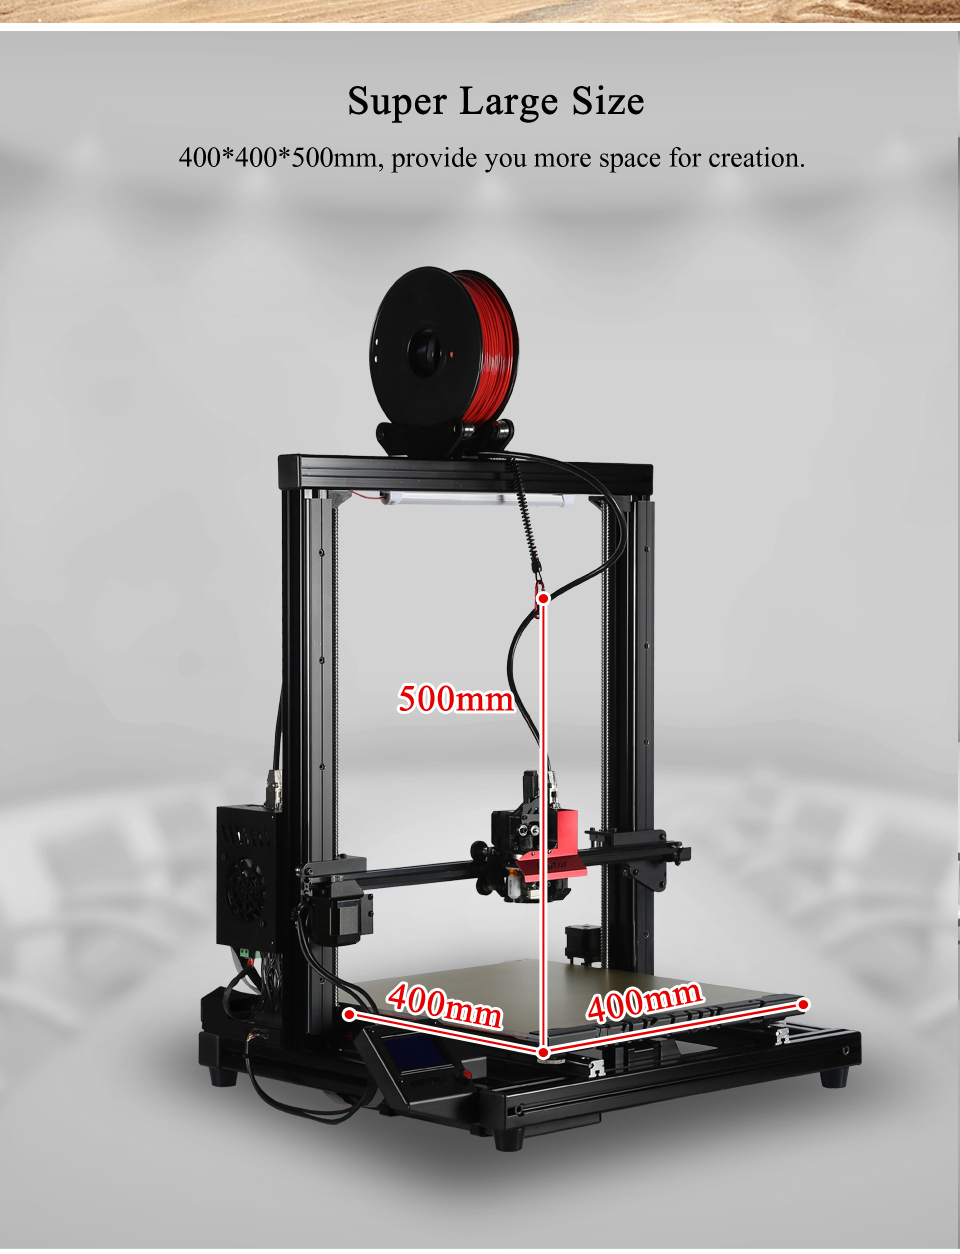 Vivedino Raptor 2+ Industrial Grade Large Scale 3D Printer